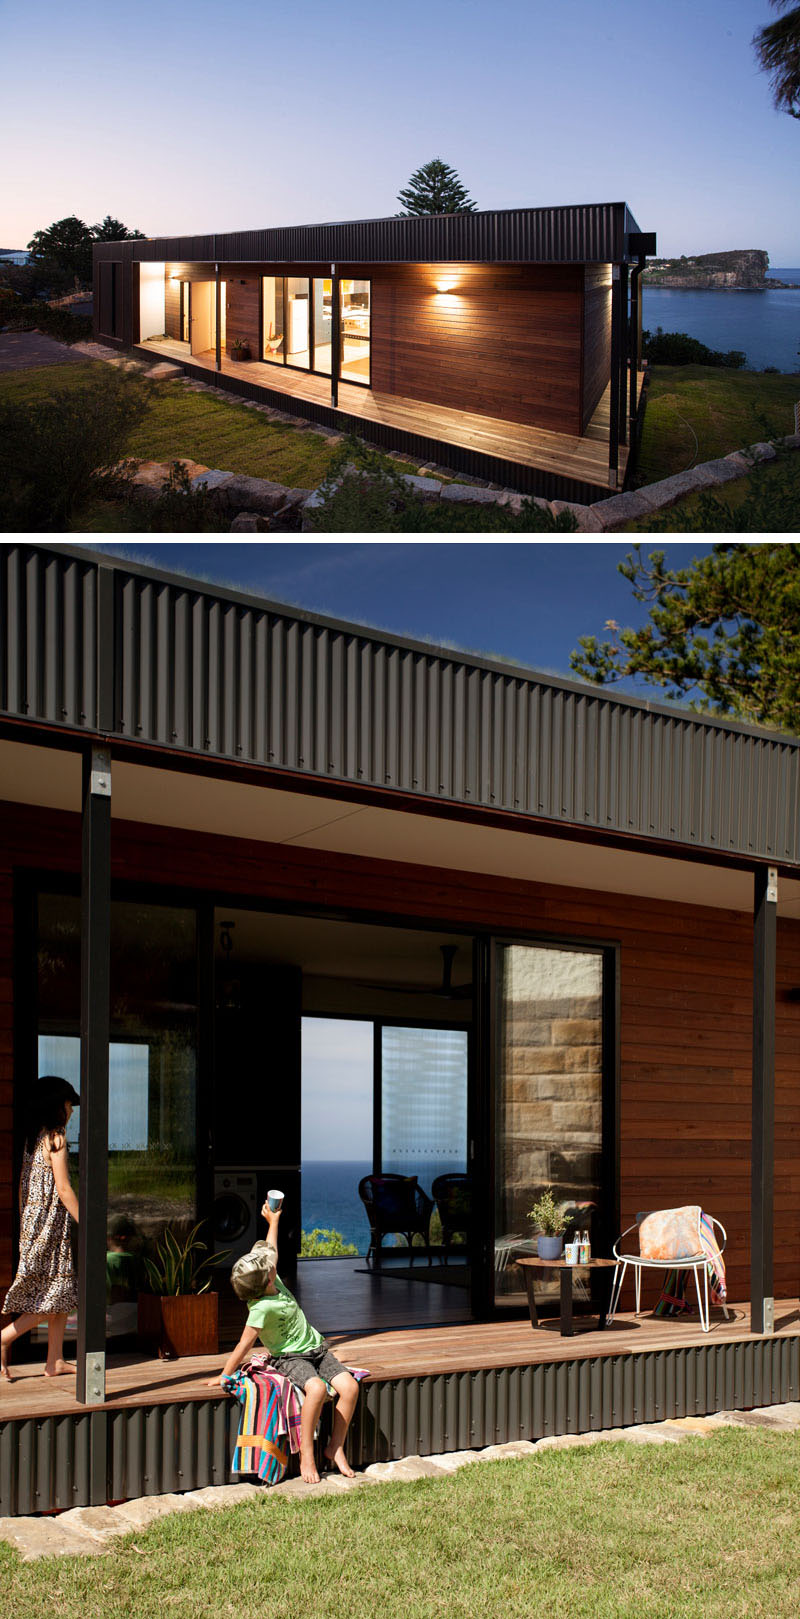 casa-cu-acoperis-natural-green-roof-prefabricated-house-2